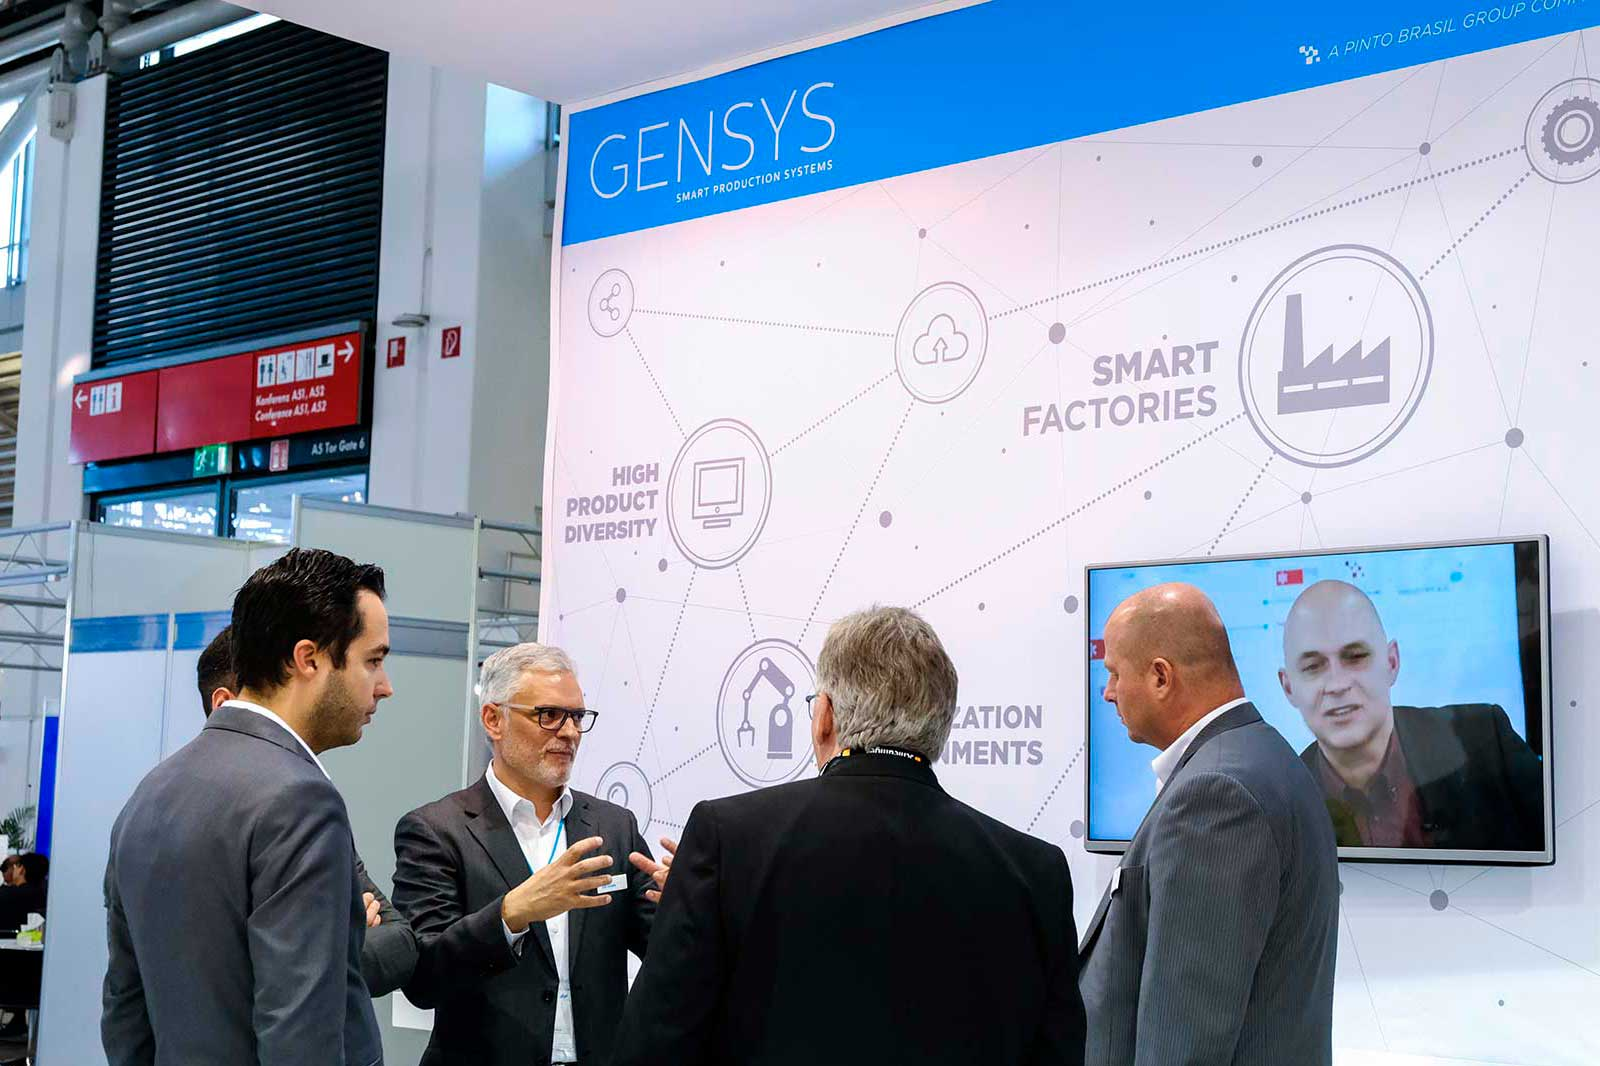 Pinto Brasil e GenSYS<br>participaram na<br>Productronica 2019